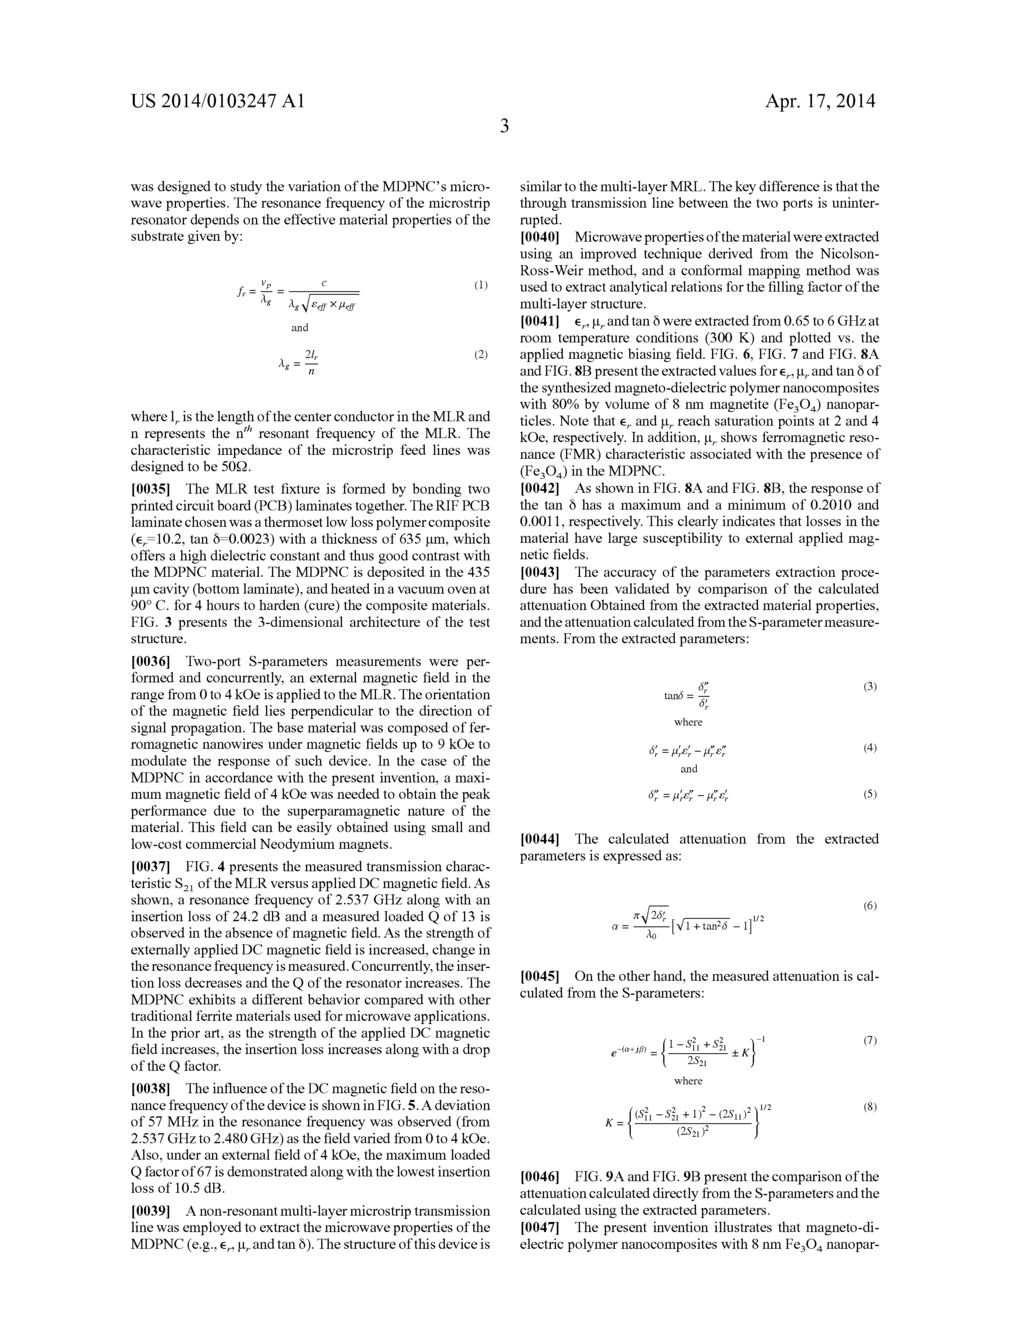 Magneto-Dielectric Polymer Nanocomposites and Method of Making - diagram, schematic, and image 20